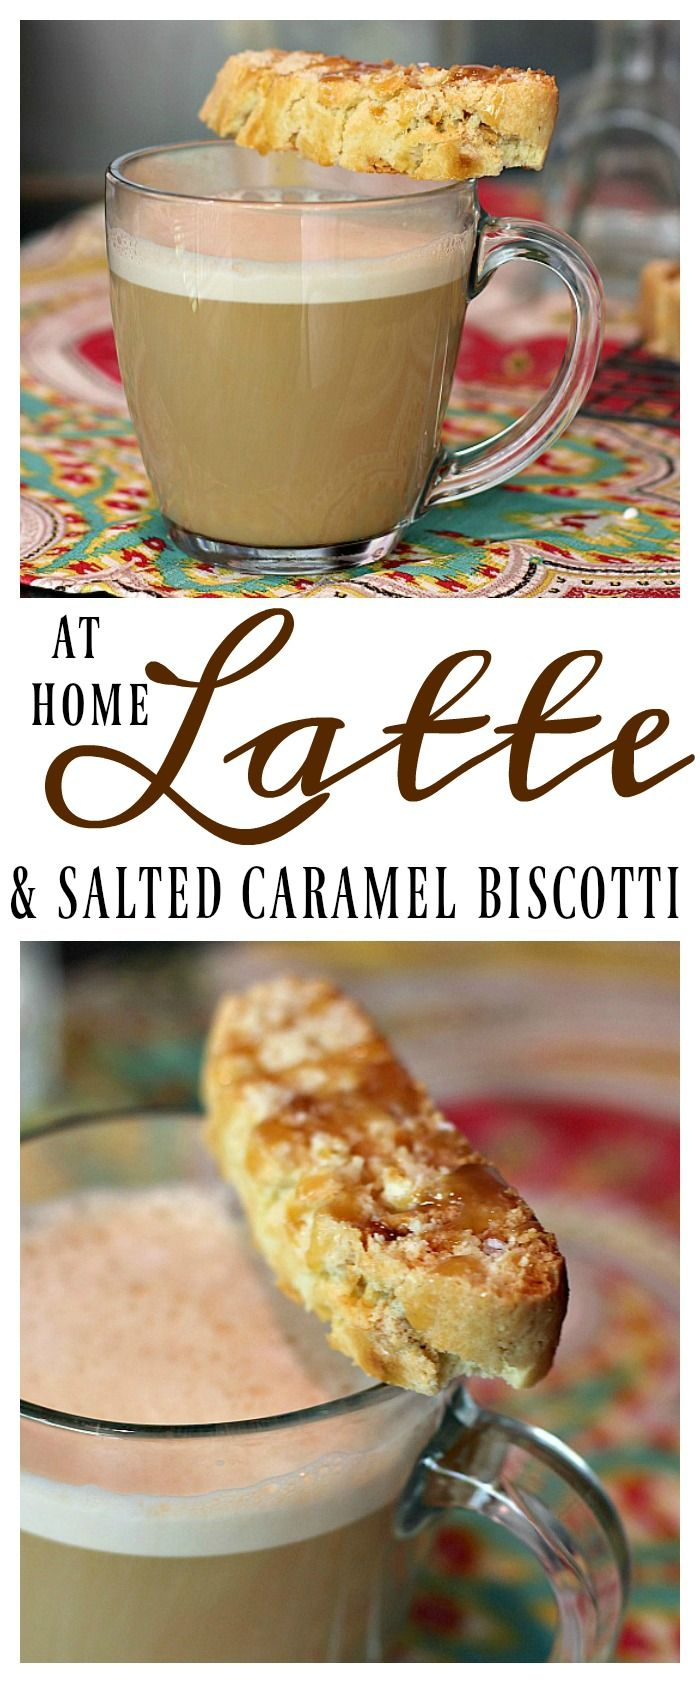 Celebrate Mother's Day with this easy Caramel Latte made with @indelight  One Touch Latte™ from @walmart and a Salted Caramel Biscotti recipe! #LatteMadeEasy #ad